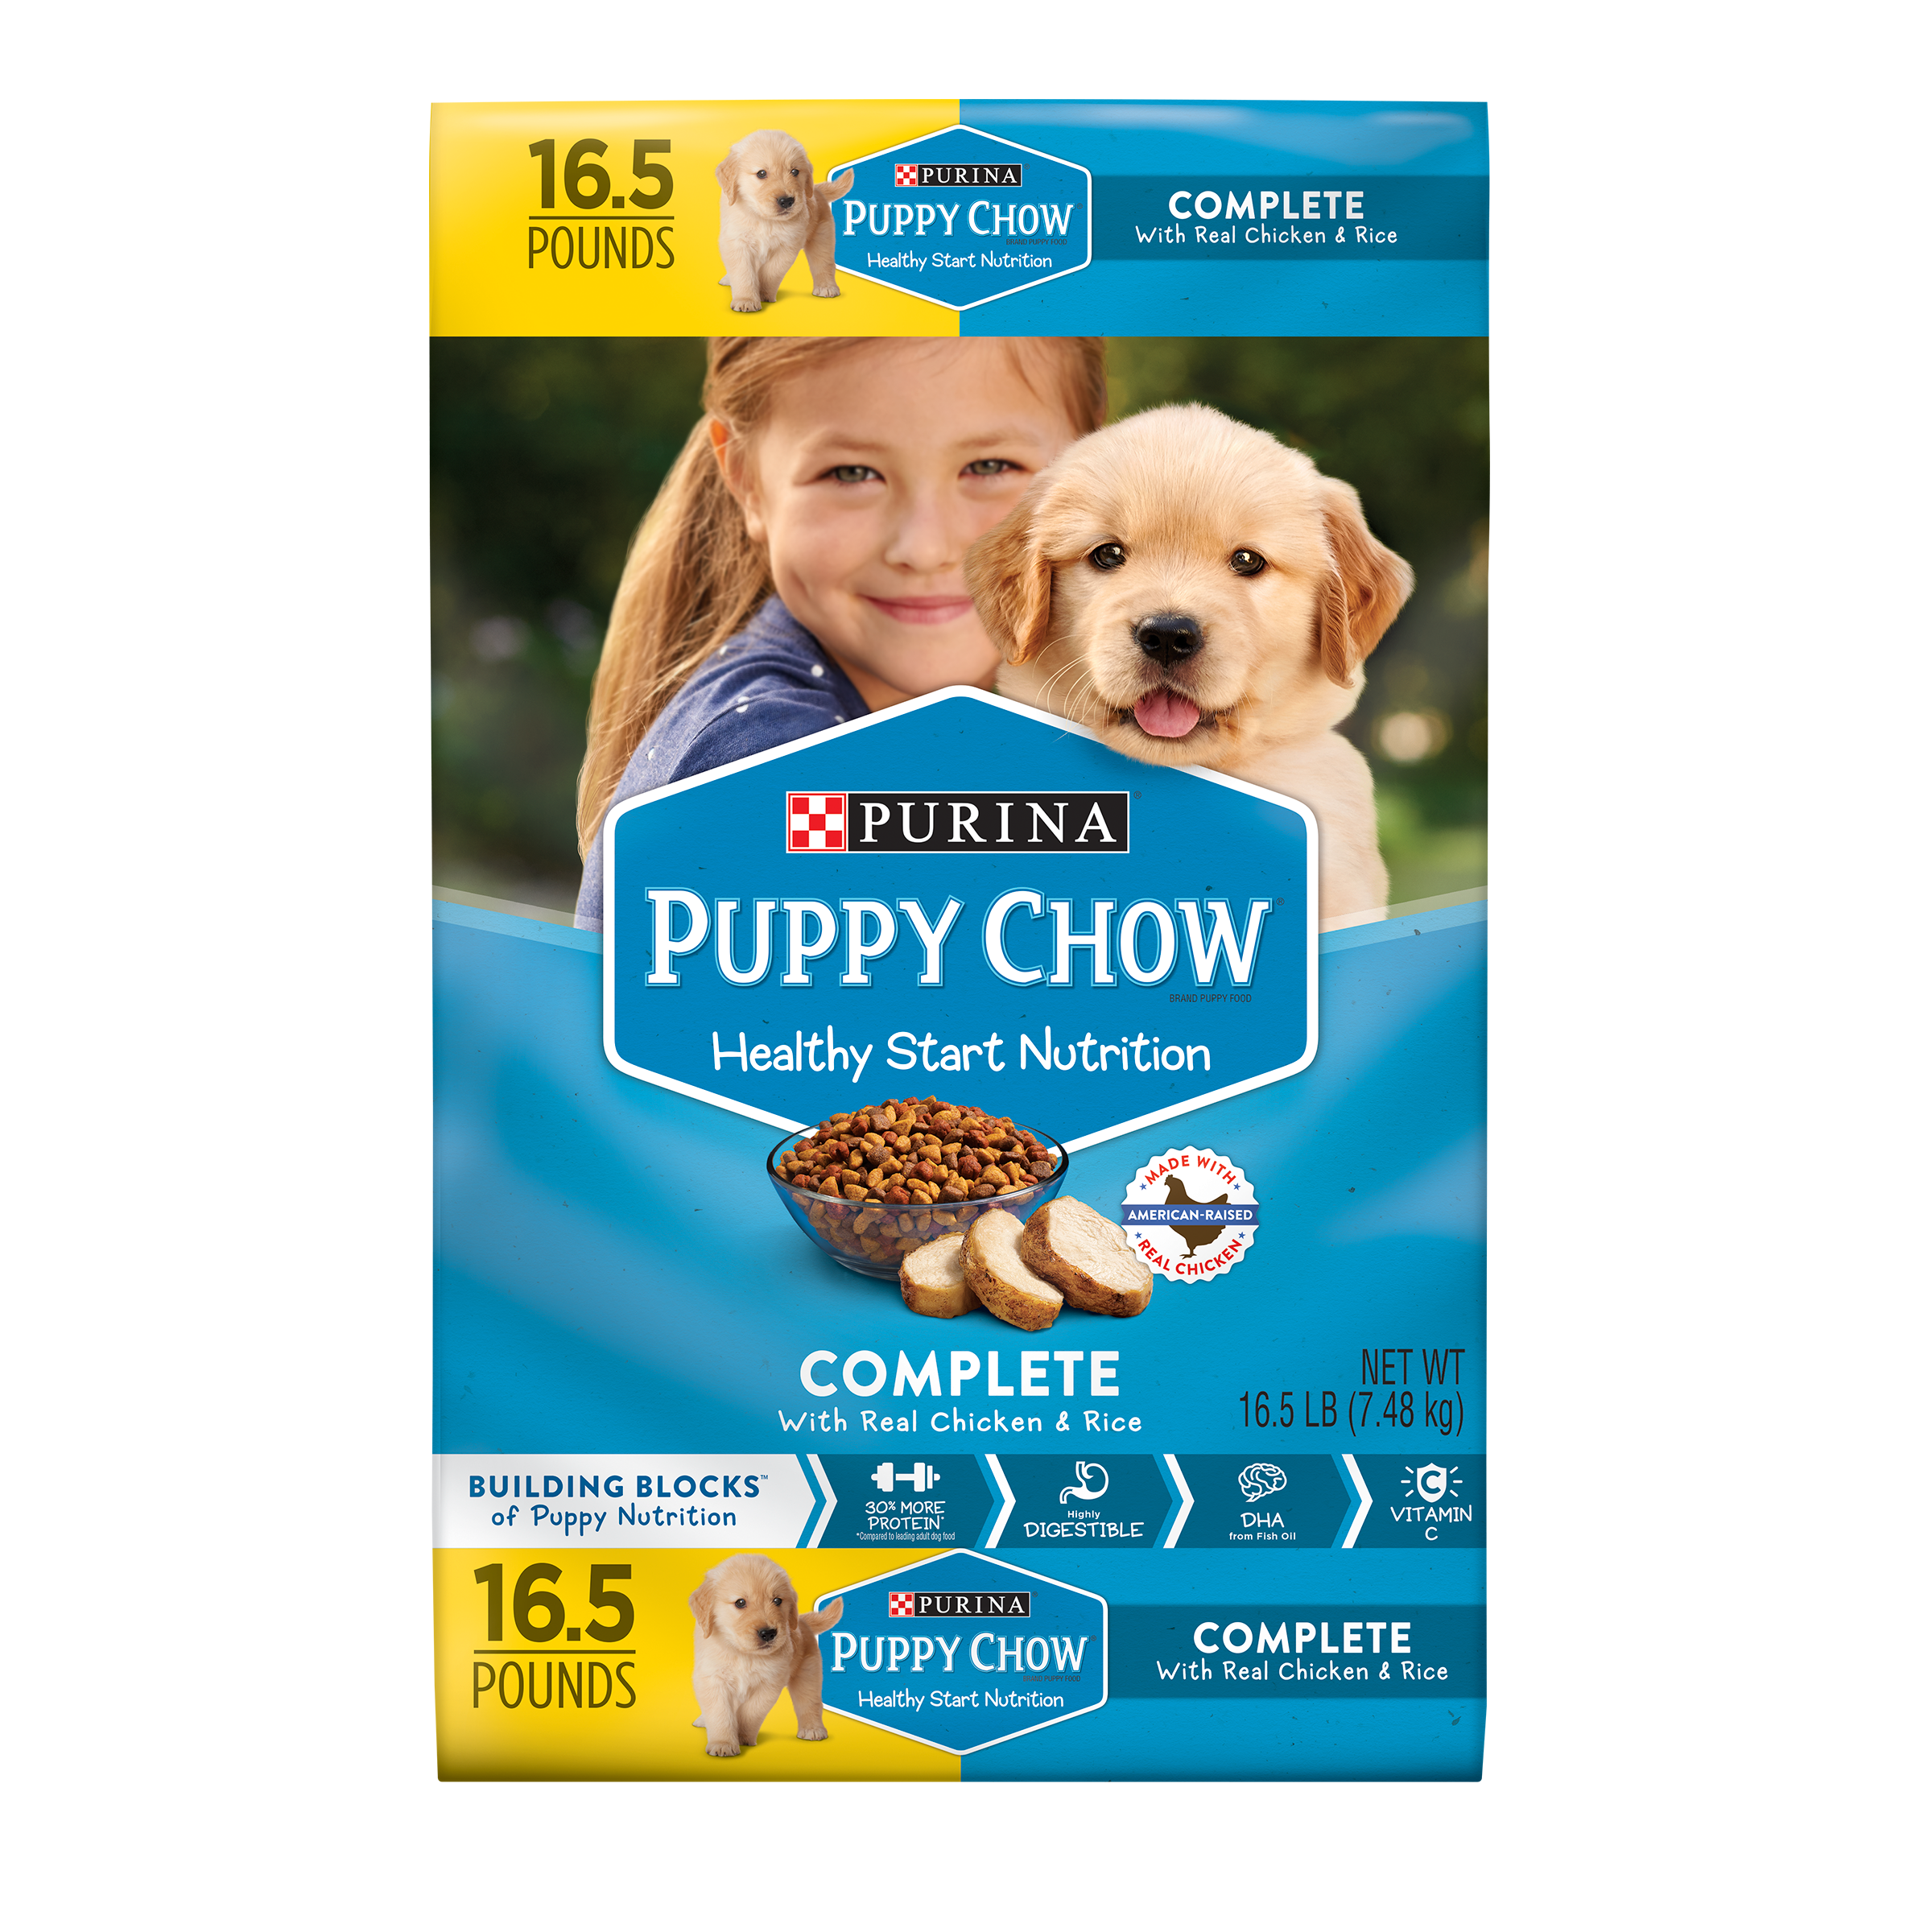 Purina Puppy Chow Complete With Real Chicken Dry Puppy Food - 16.5 lb. Bag